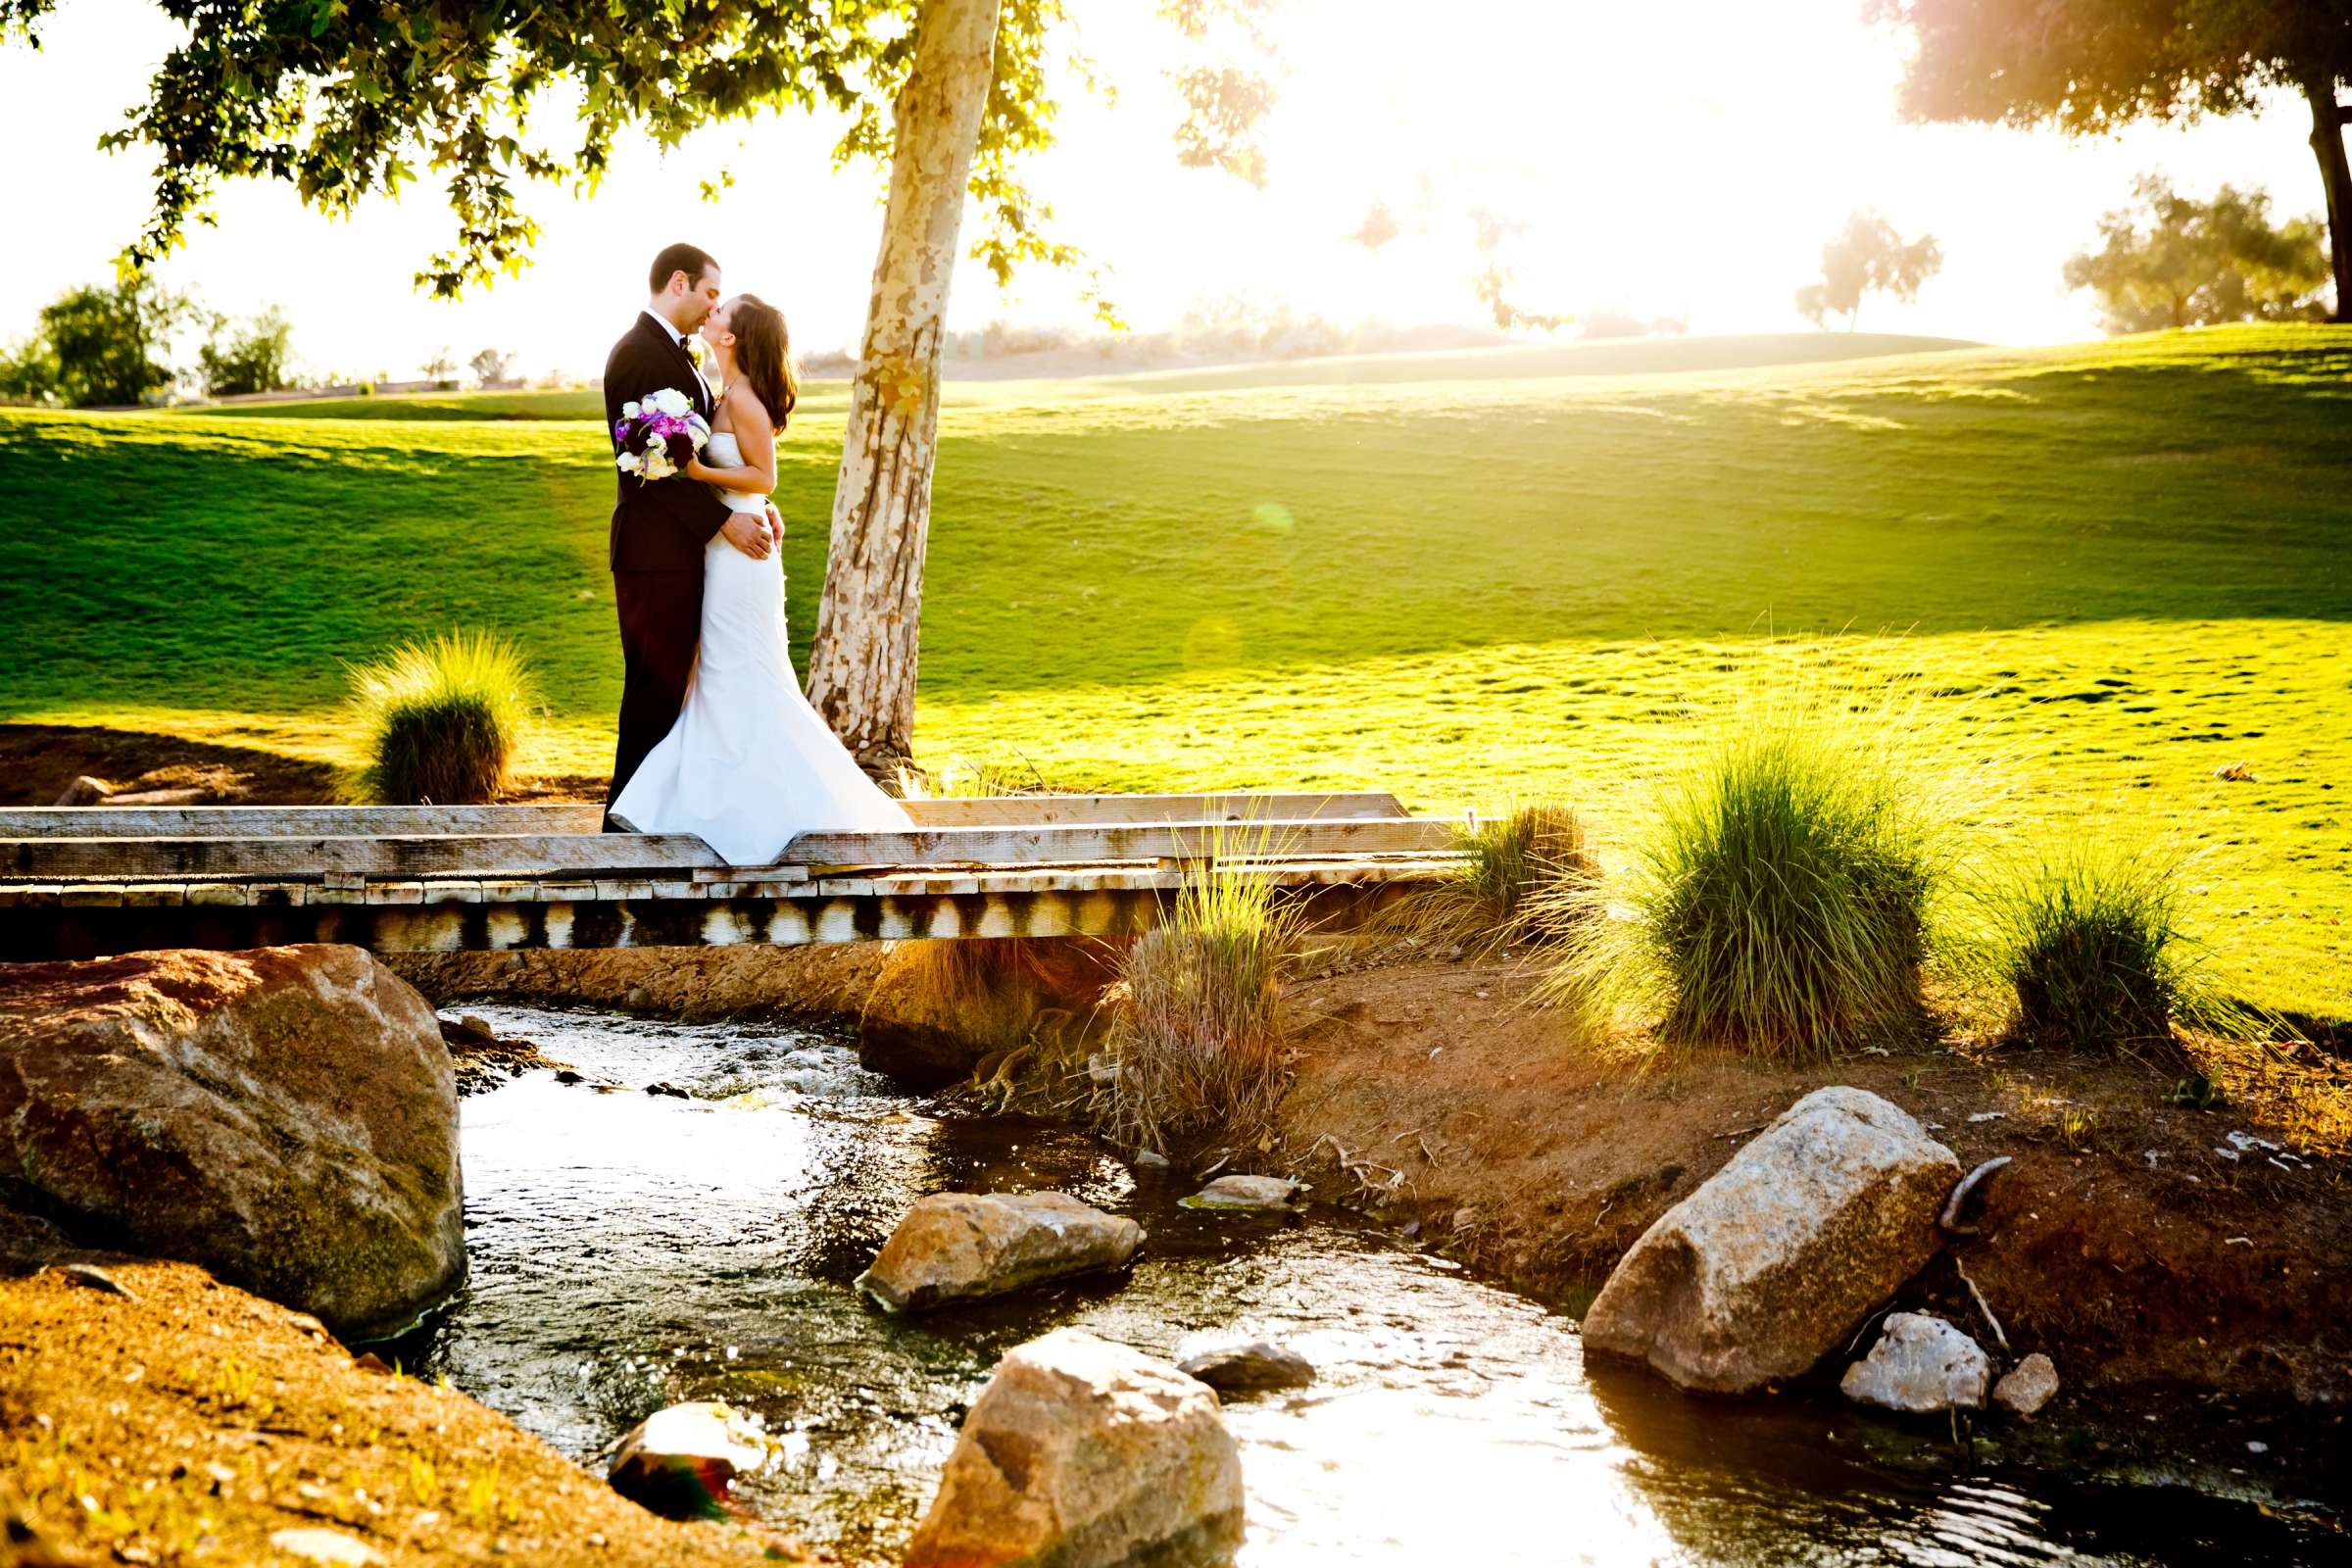 Maderas Golf Club Wedding coordinated by Anns Plans, Natalie and Matt Wedding Photo #319723 by True Photography